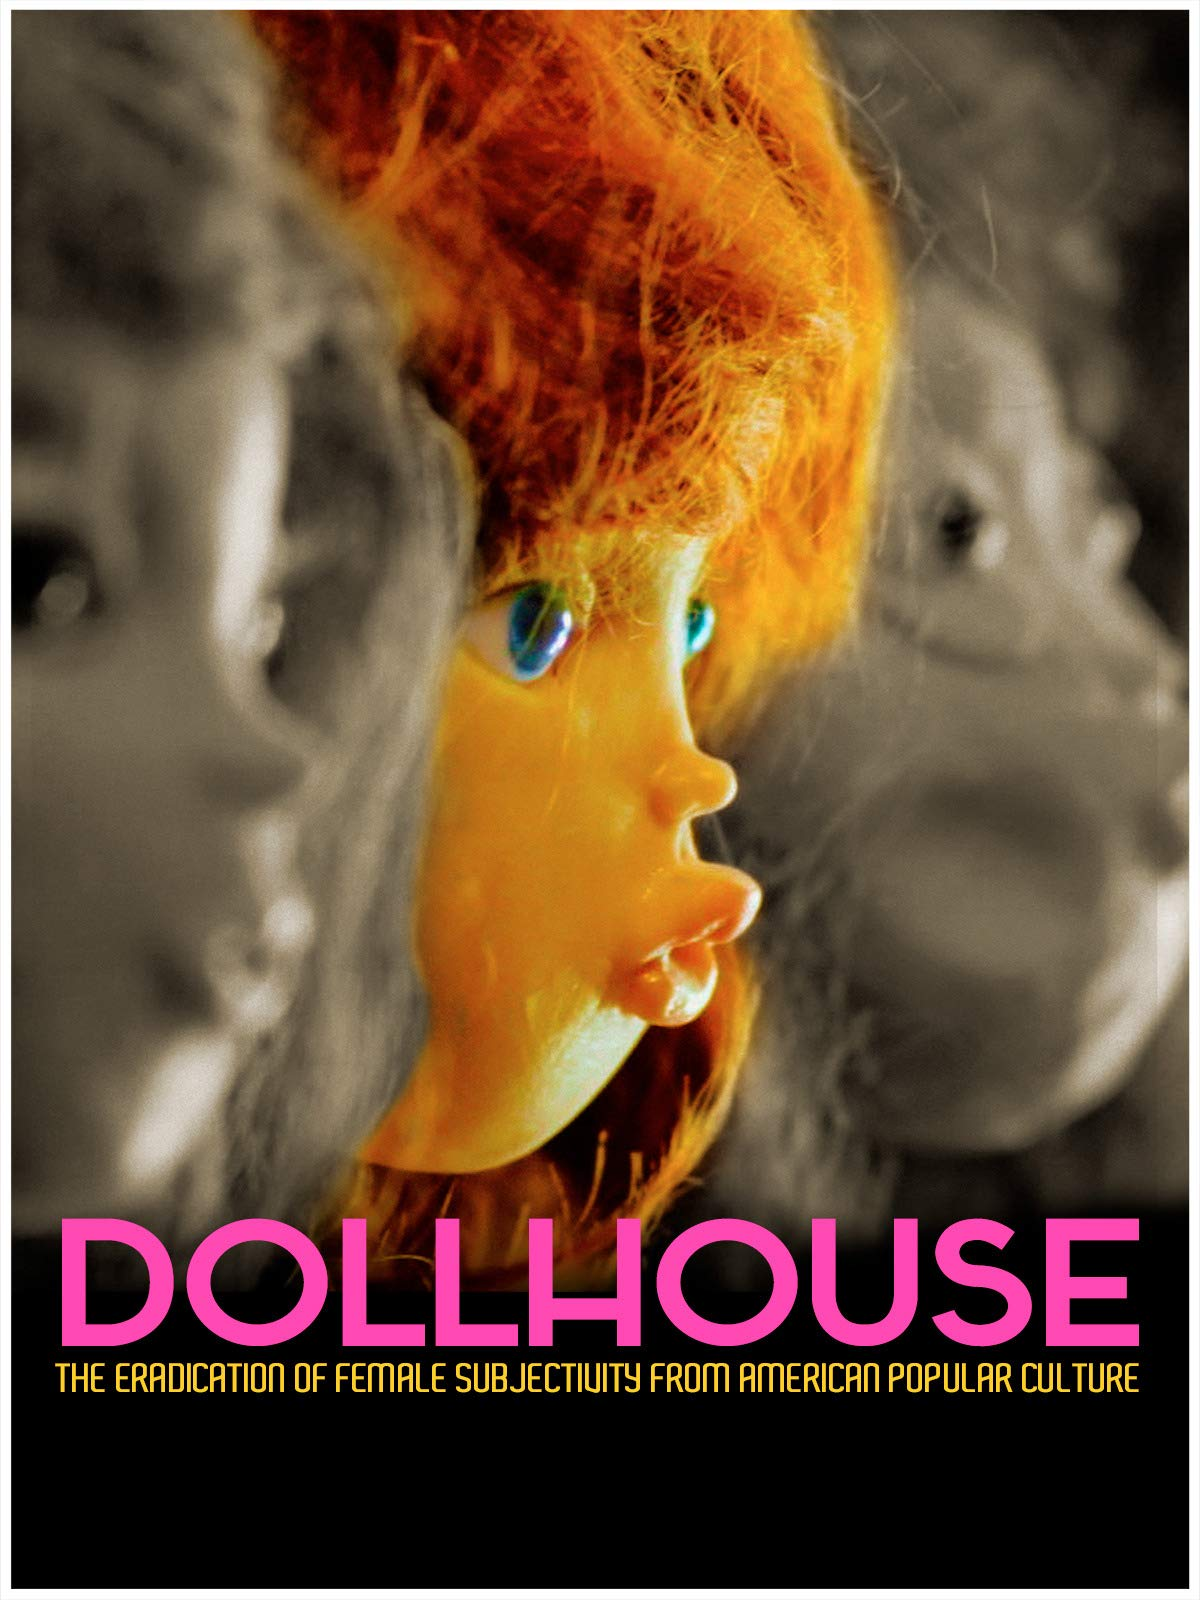 Dollhouse: The Eradication Of Female Subjectivity From American Popular Culture